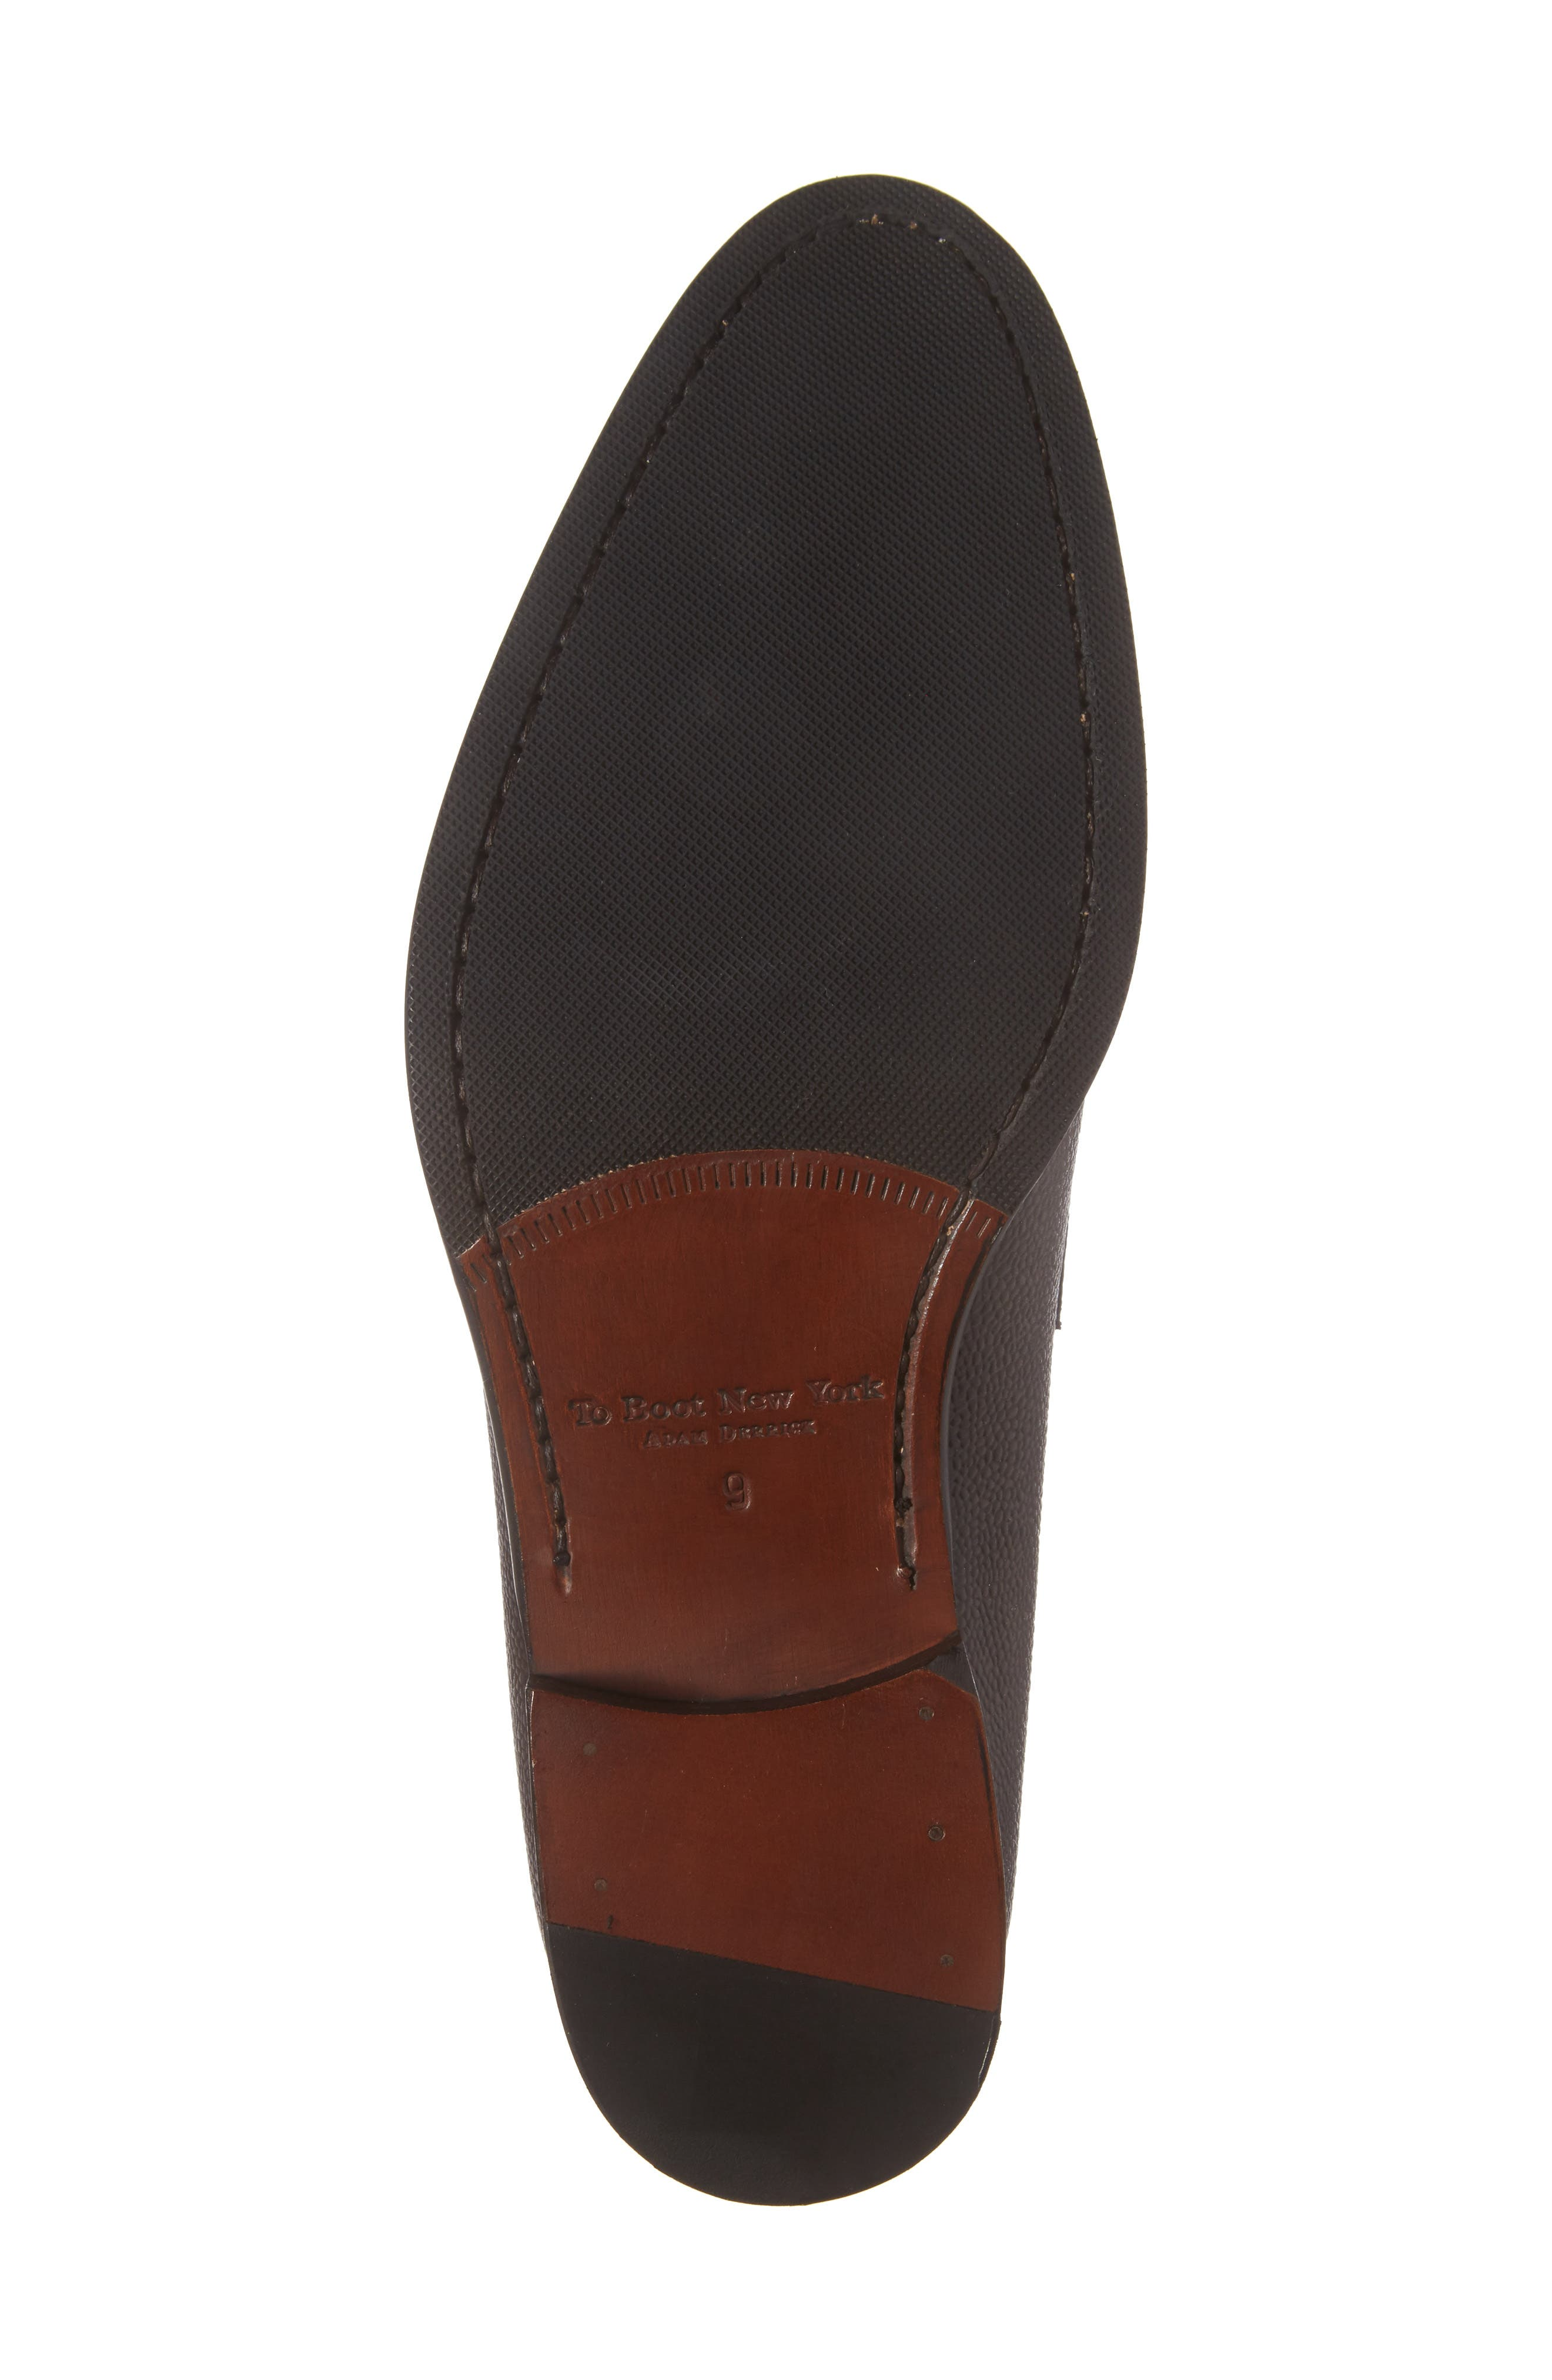 James Penny Loafer,                             Alternate thumbnail 6, color,                             Brown Leather